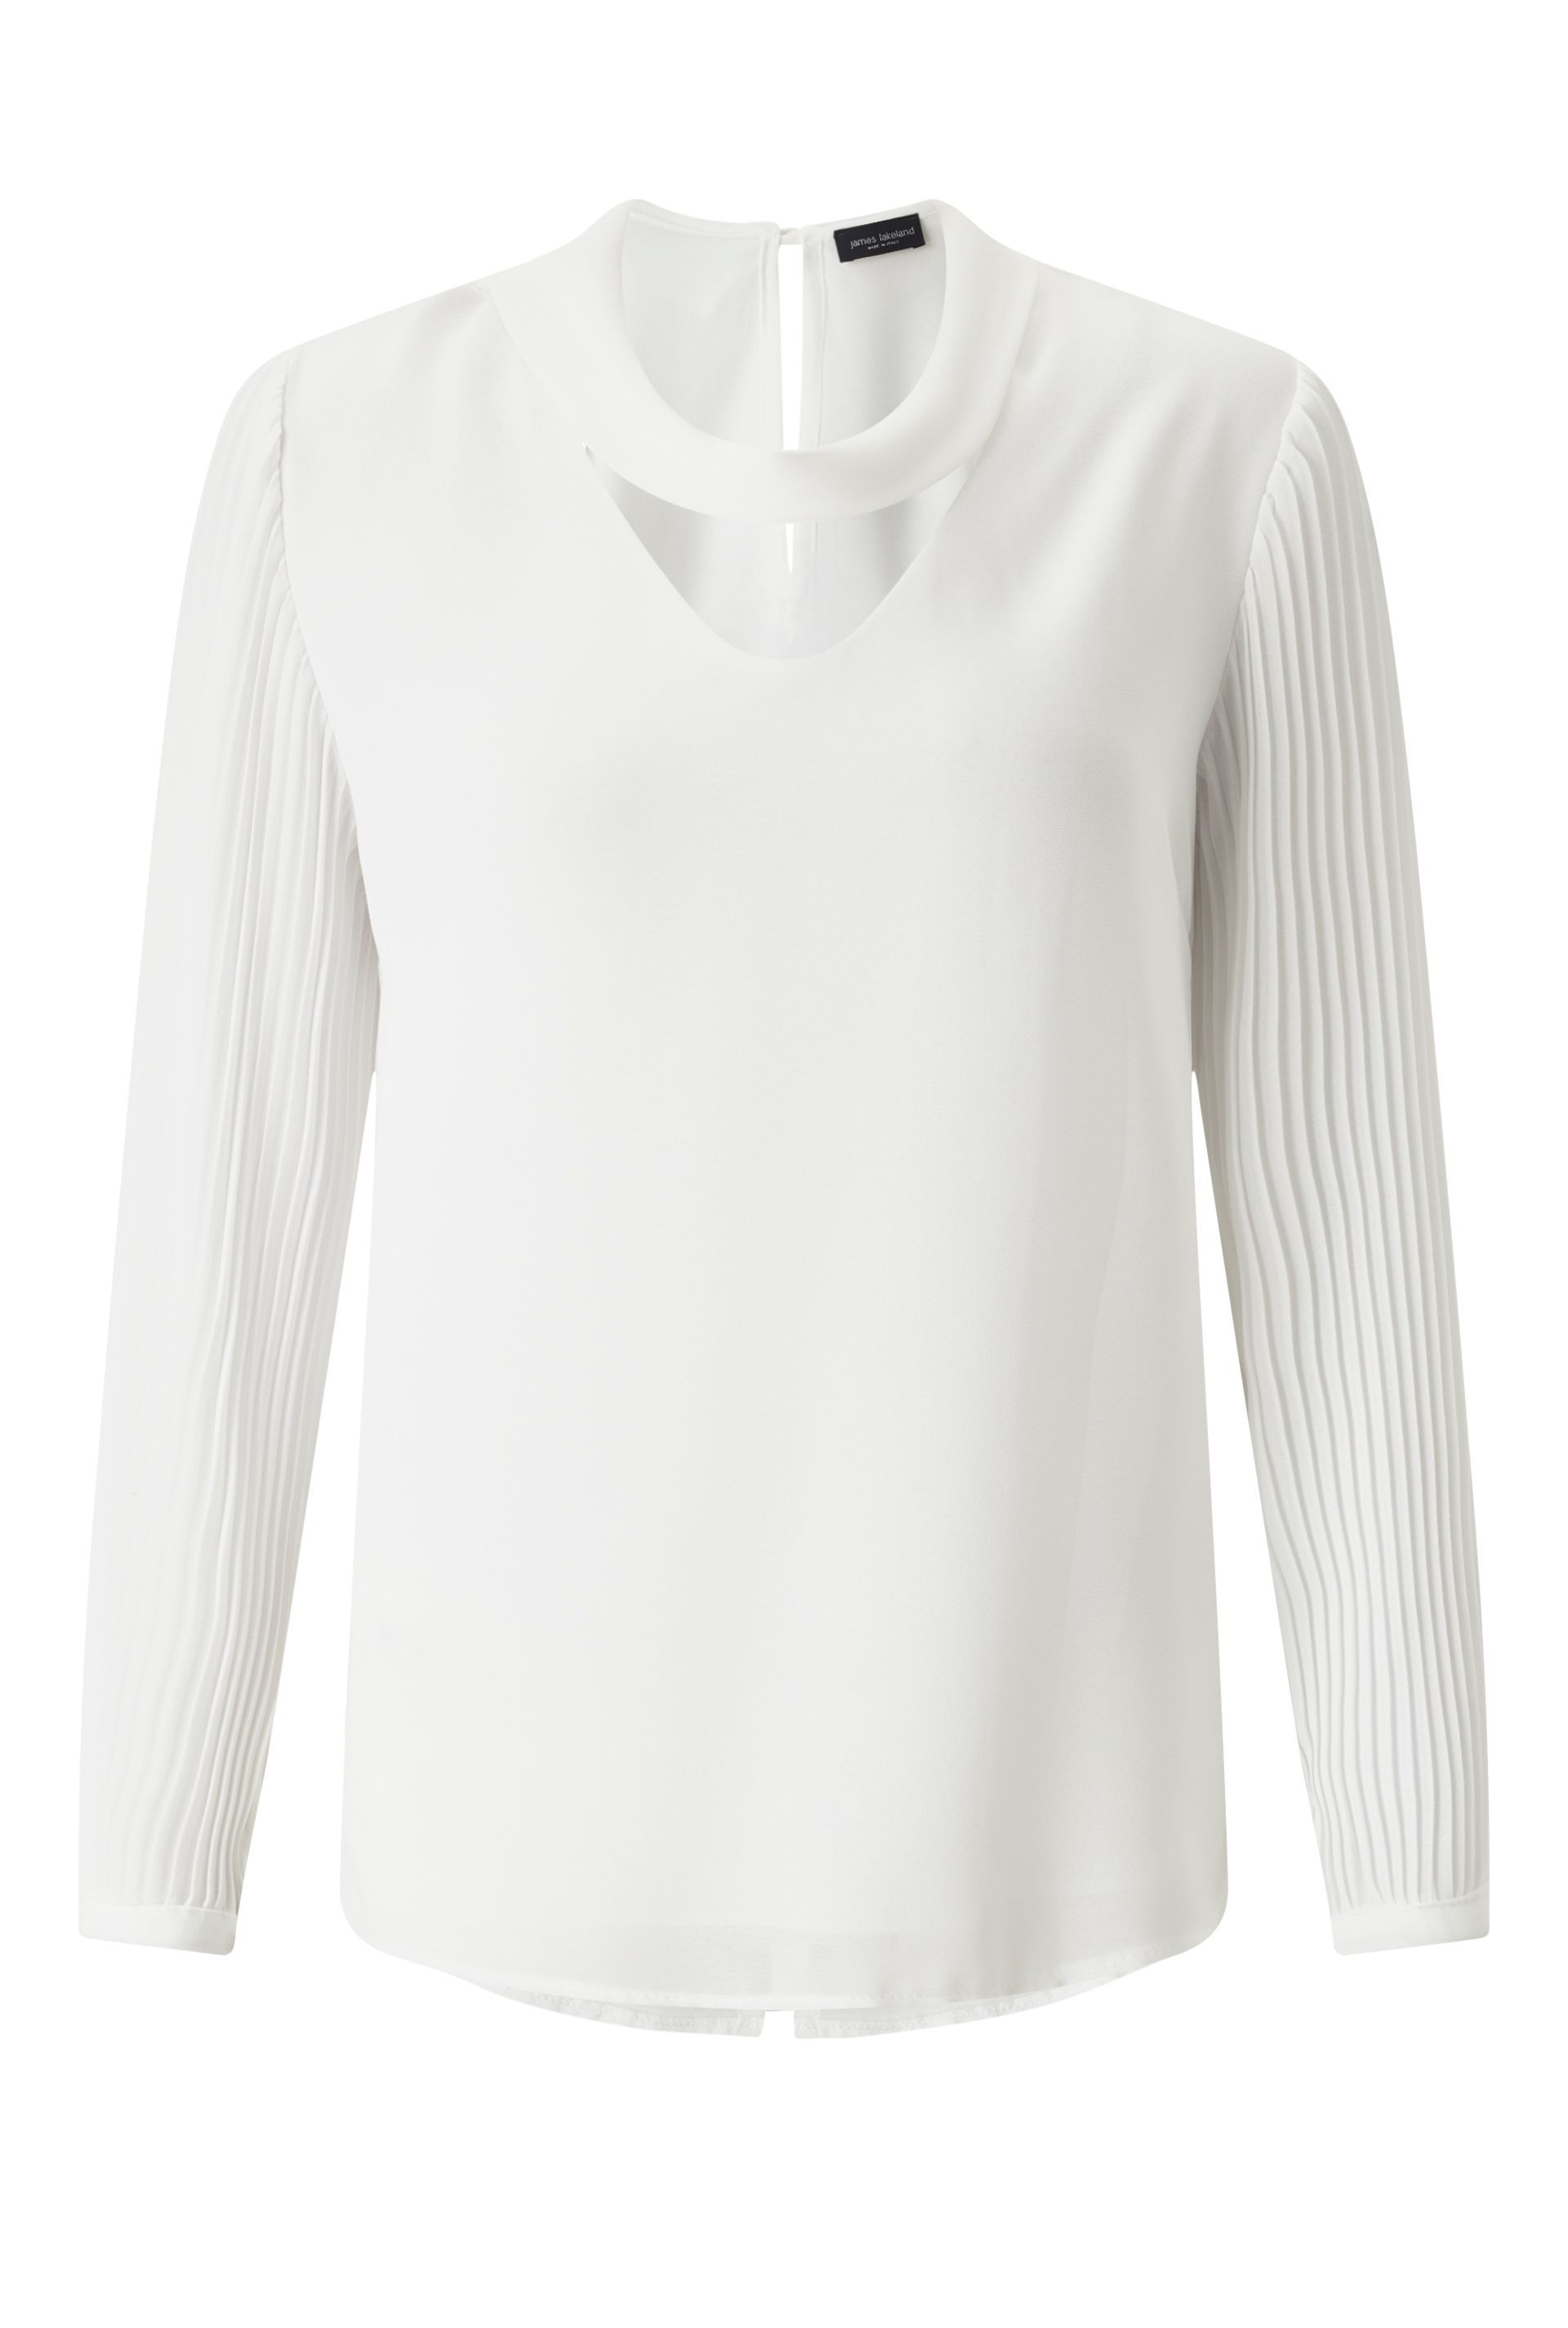 James Lakeland Pleat Sleeve Blouse, White